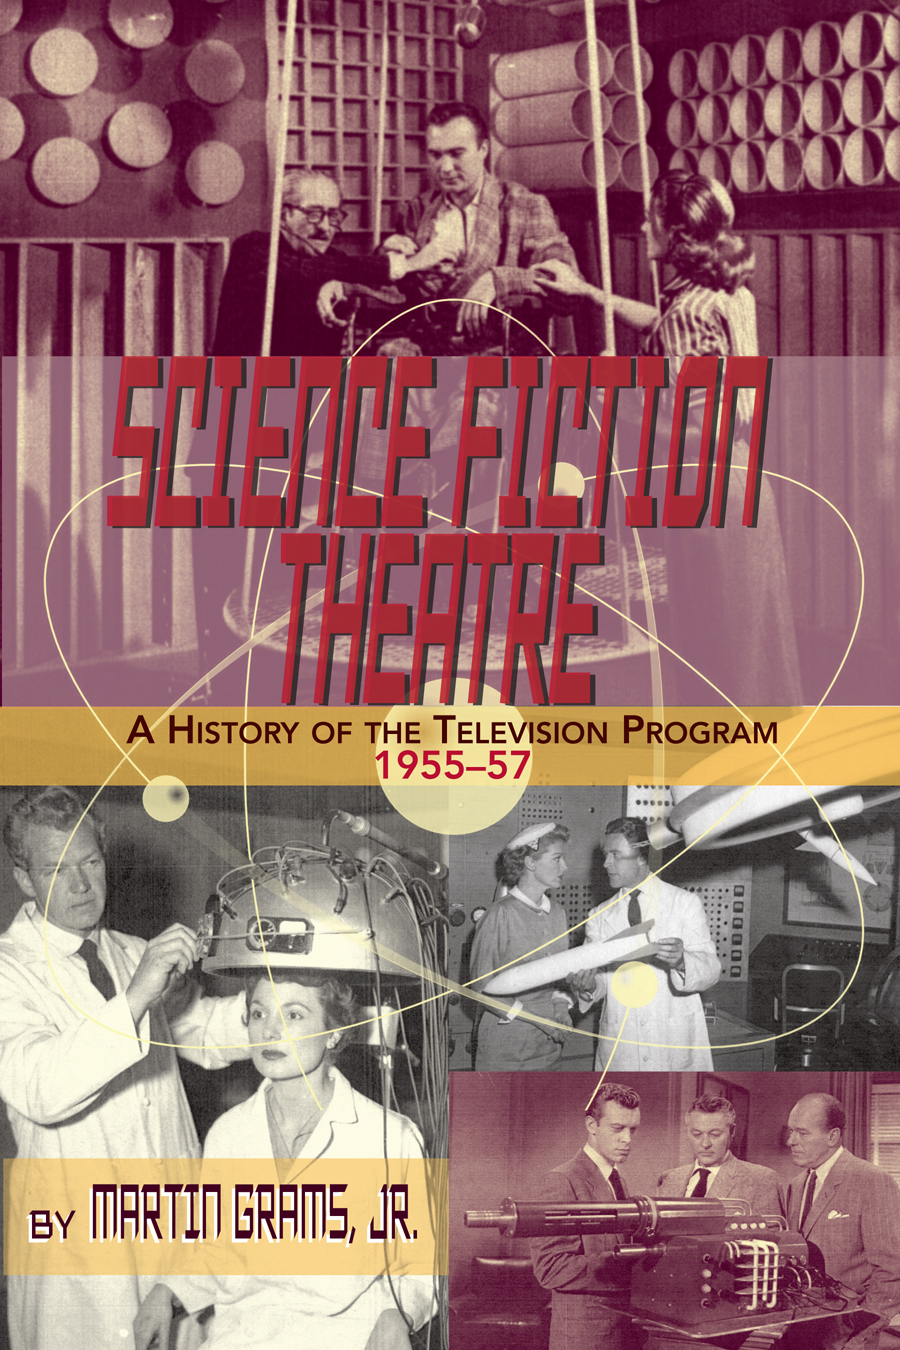 Science Fiction Theatre: A History of the Television Program, 1955-57